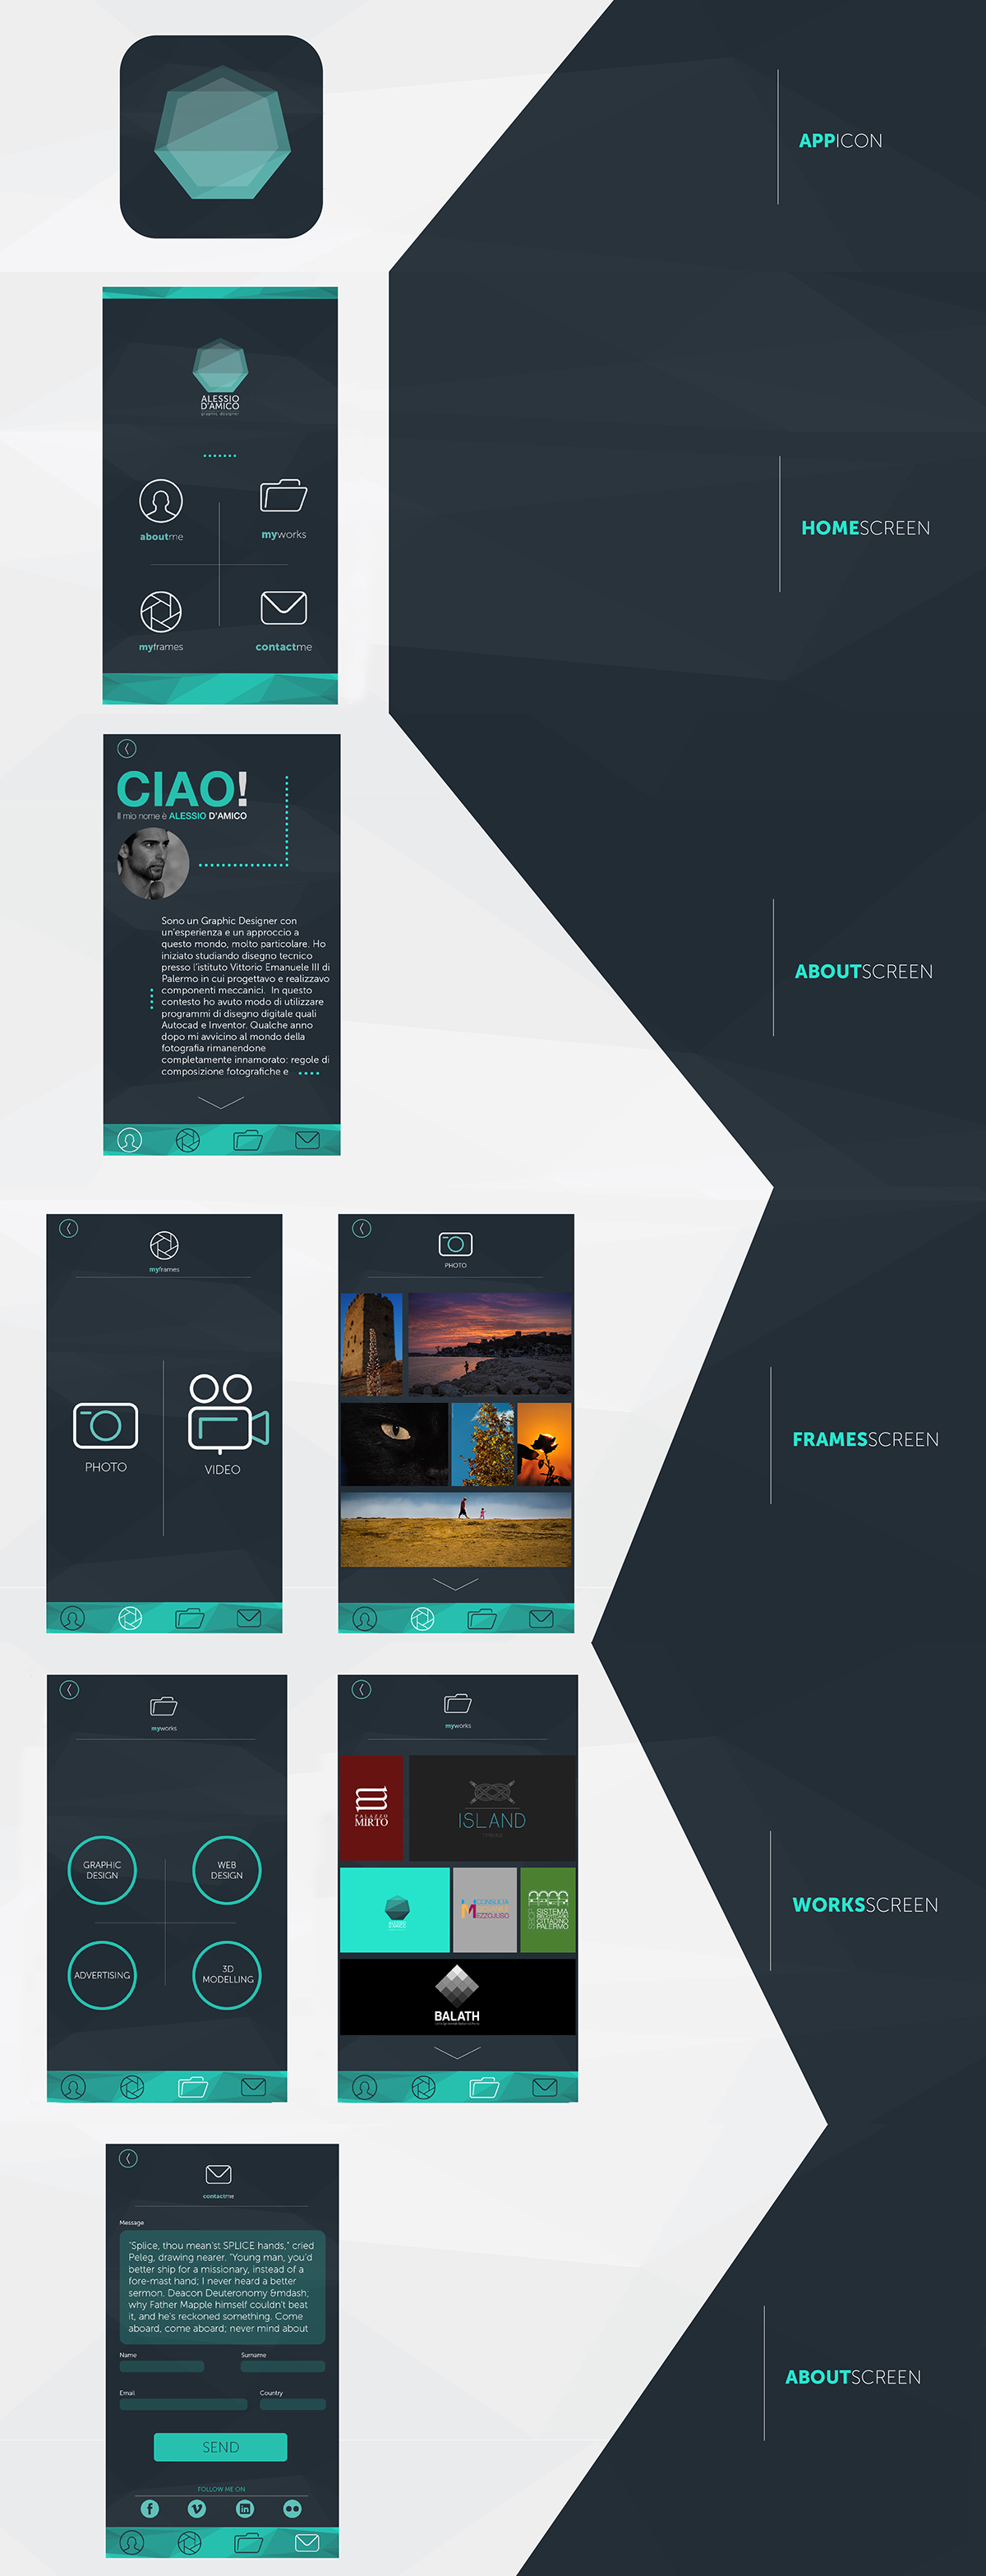 mobile application app ios material design graphic Interface flowchart personal portfolio interaction gestures skills Promotion